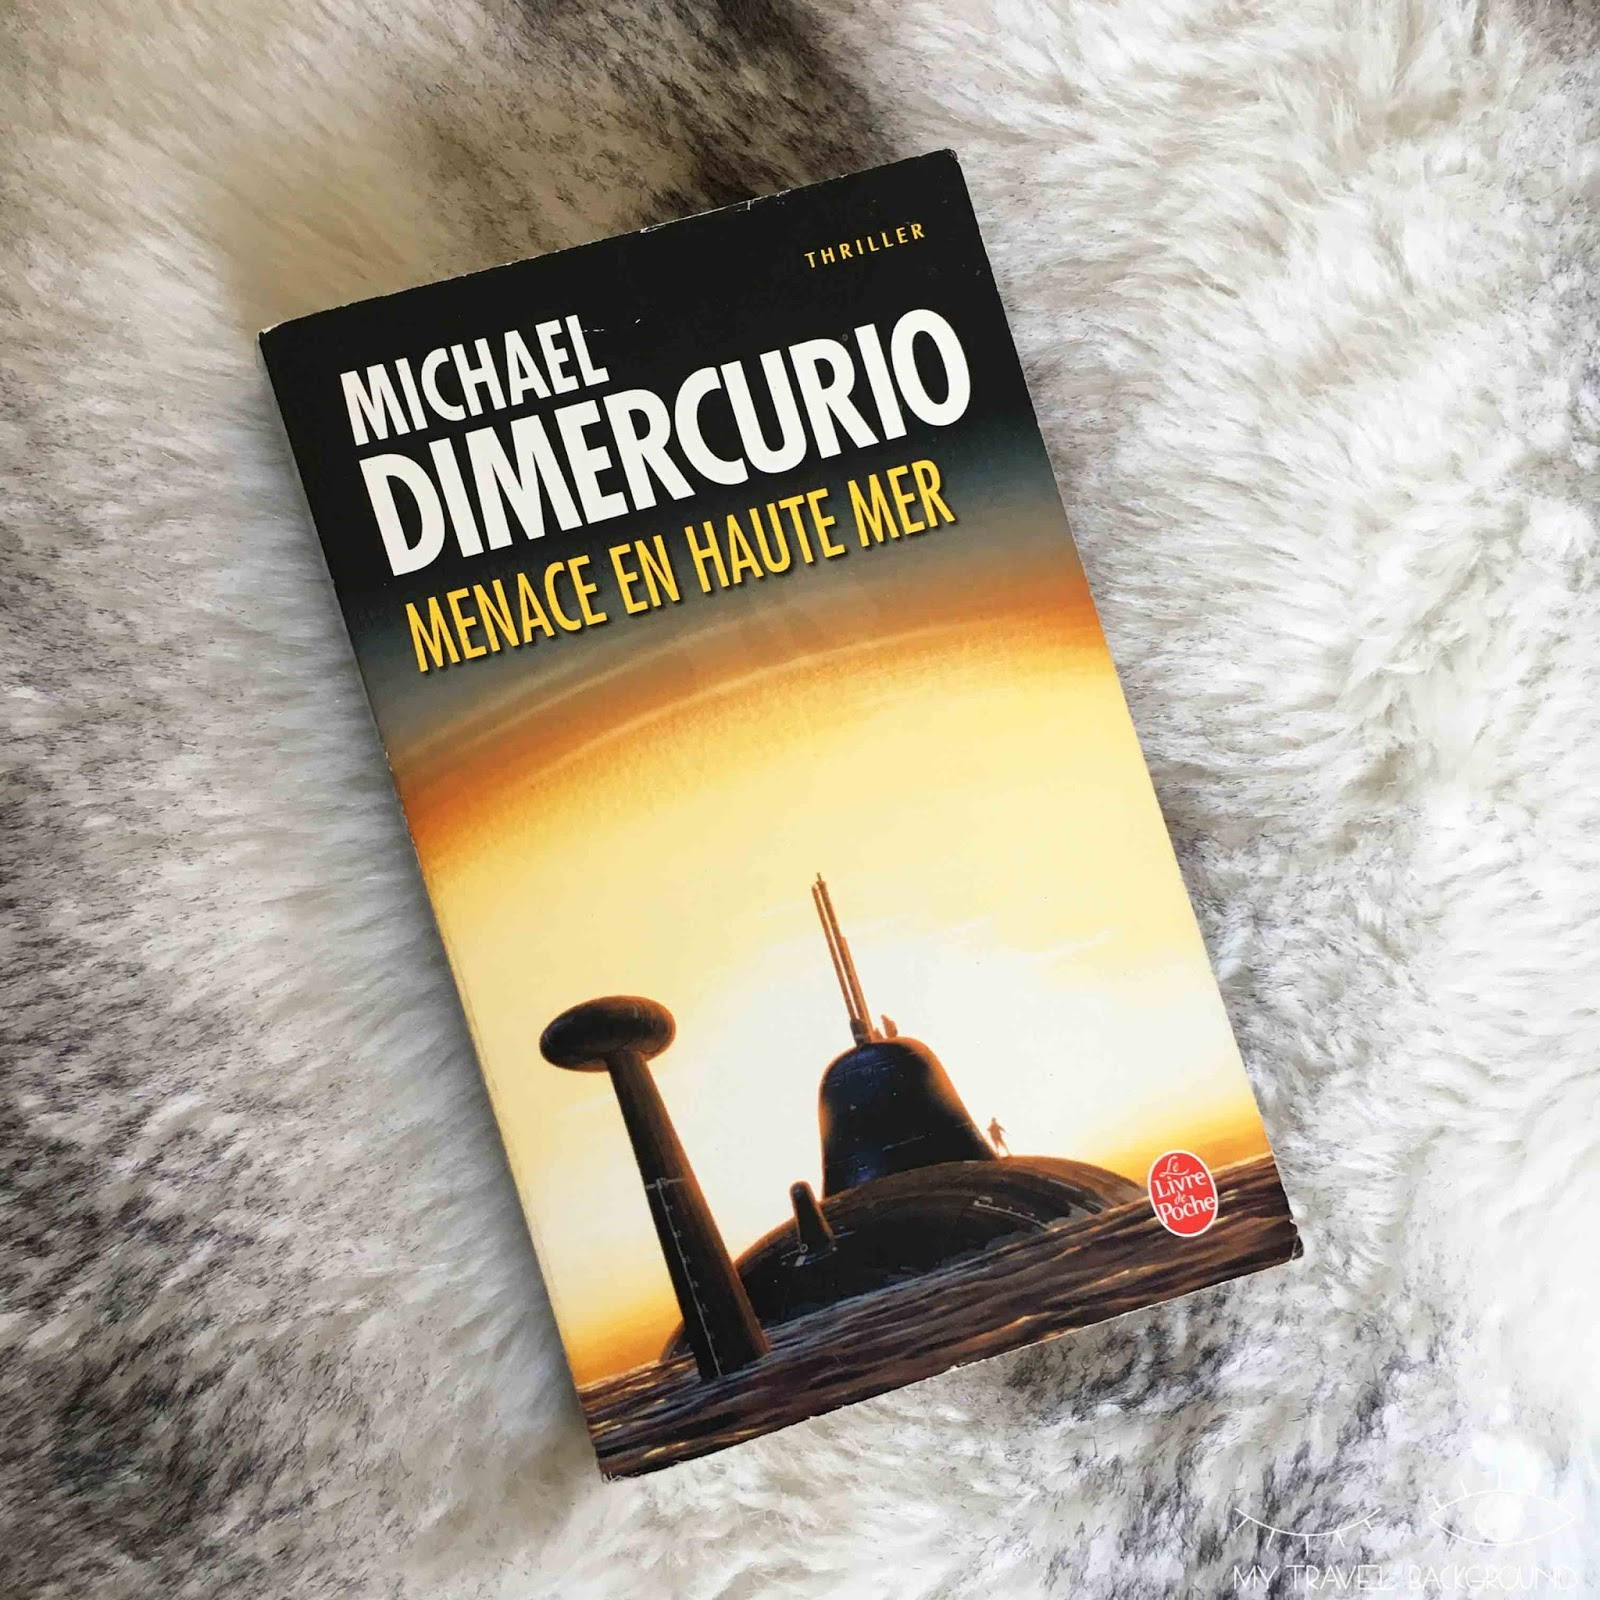 My Travel Background : 9 romans qui vont vous faire voyager, Menace en haute mer, Michael Dimercurio